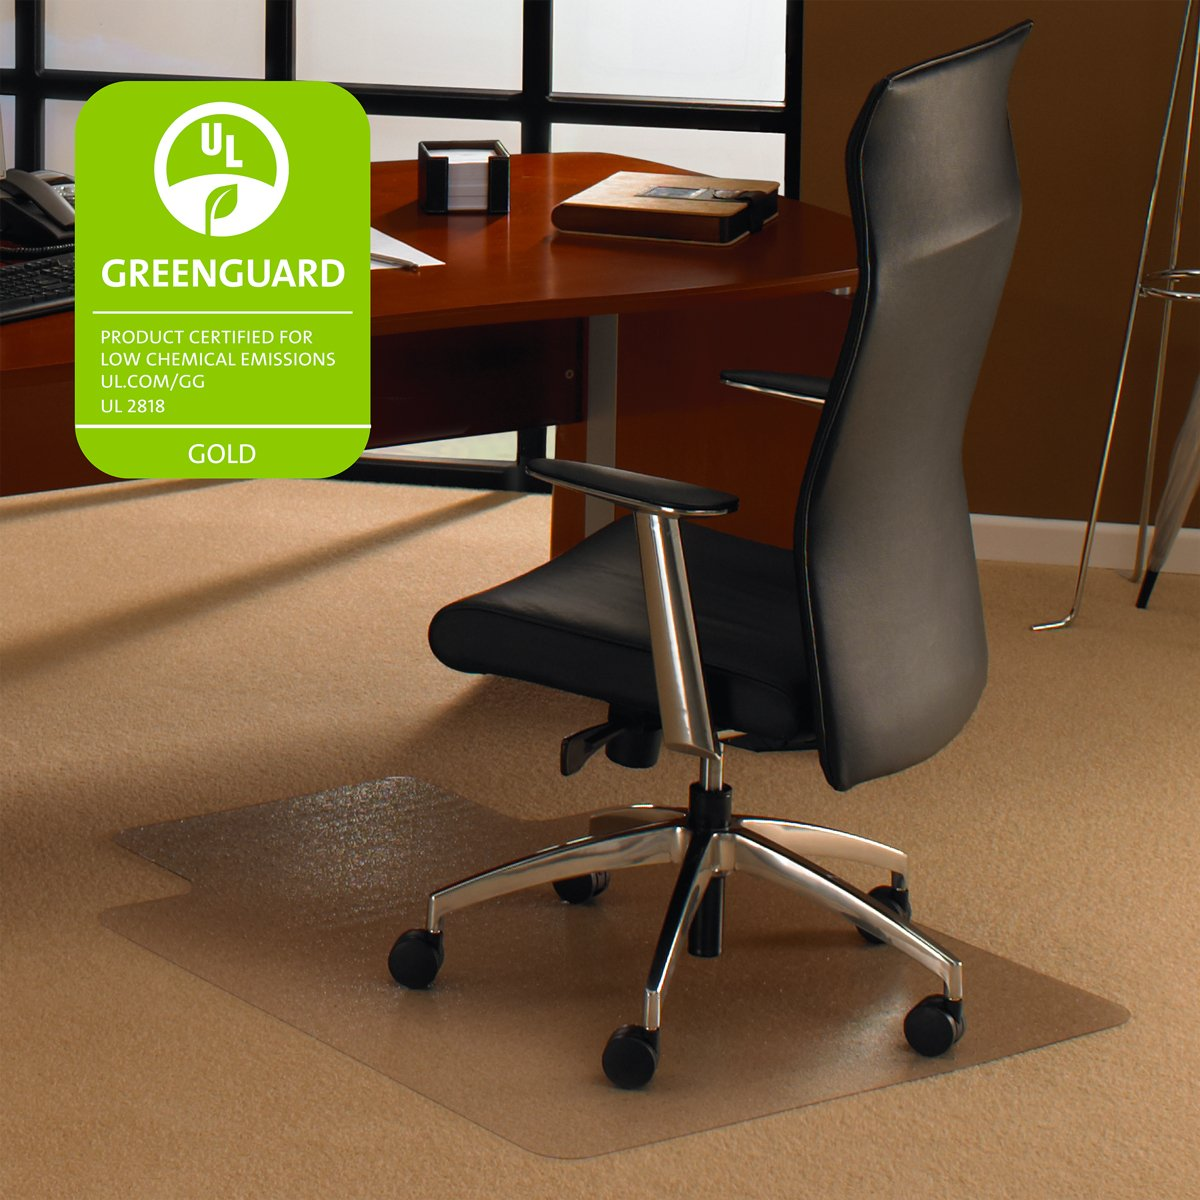 independent chair the short chairs furniture neck ergonomic back person tall floors extras house fibromyalgia pain shoulder indybest office best floor garden for